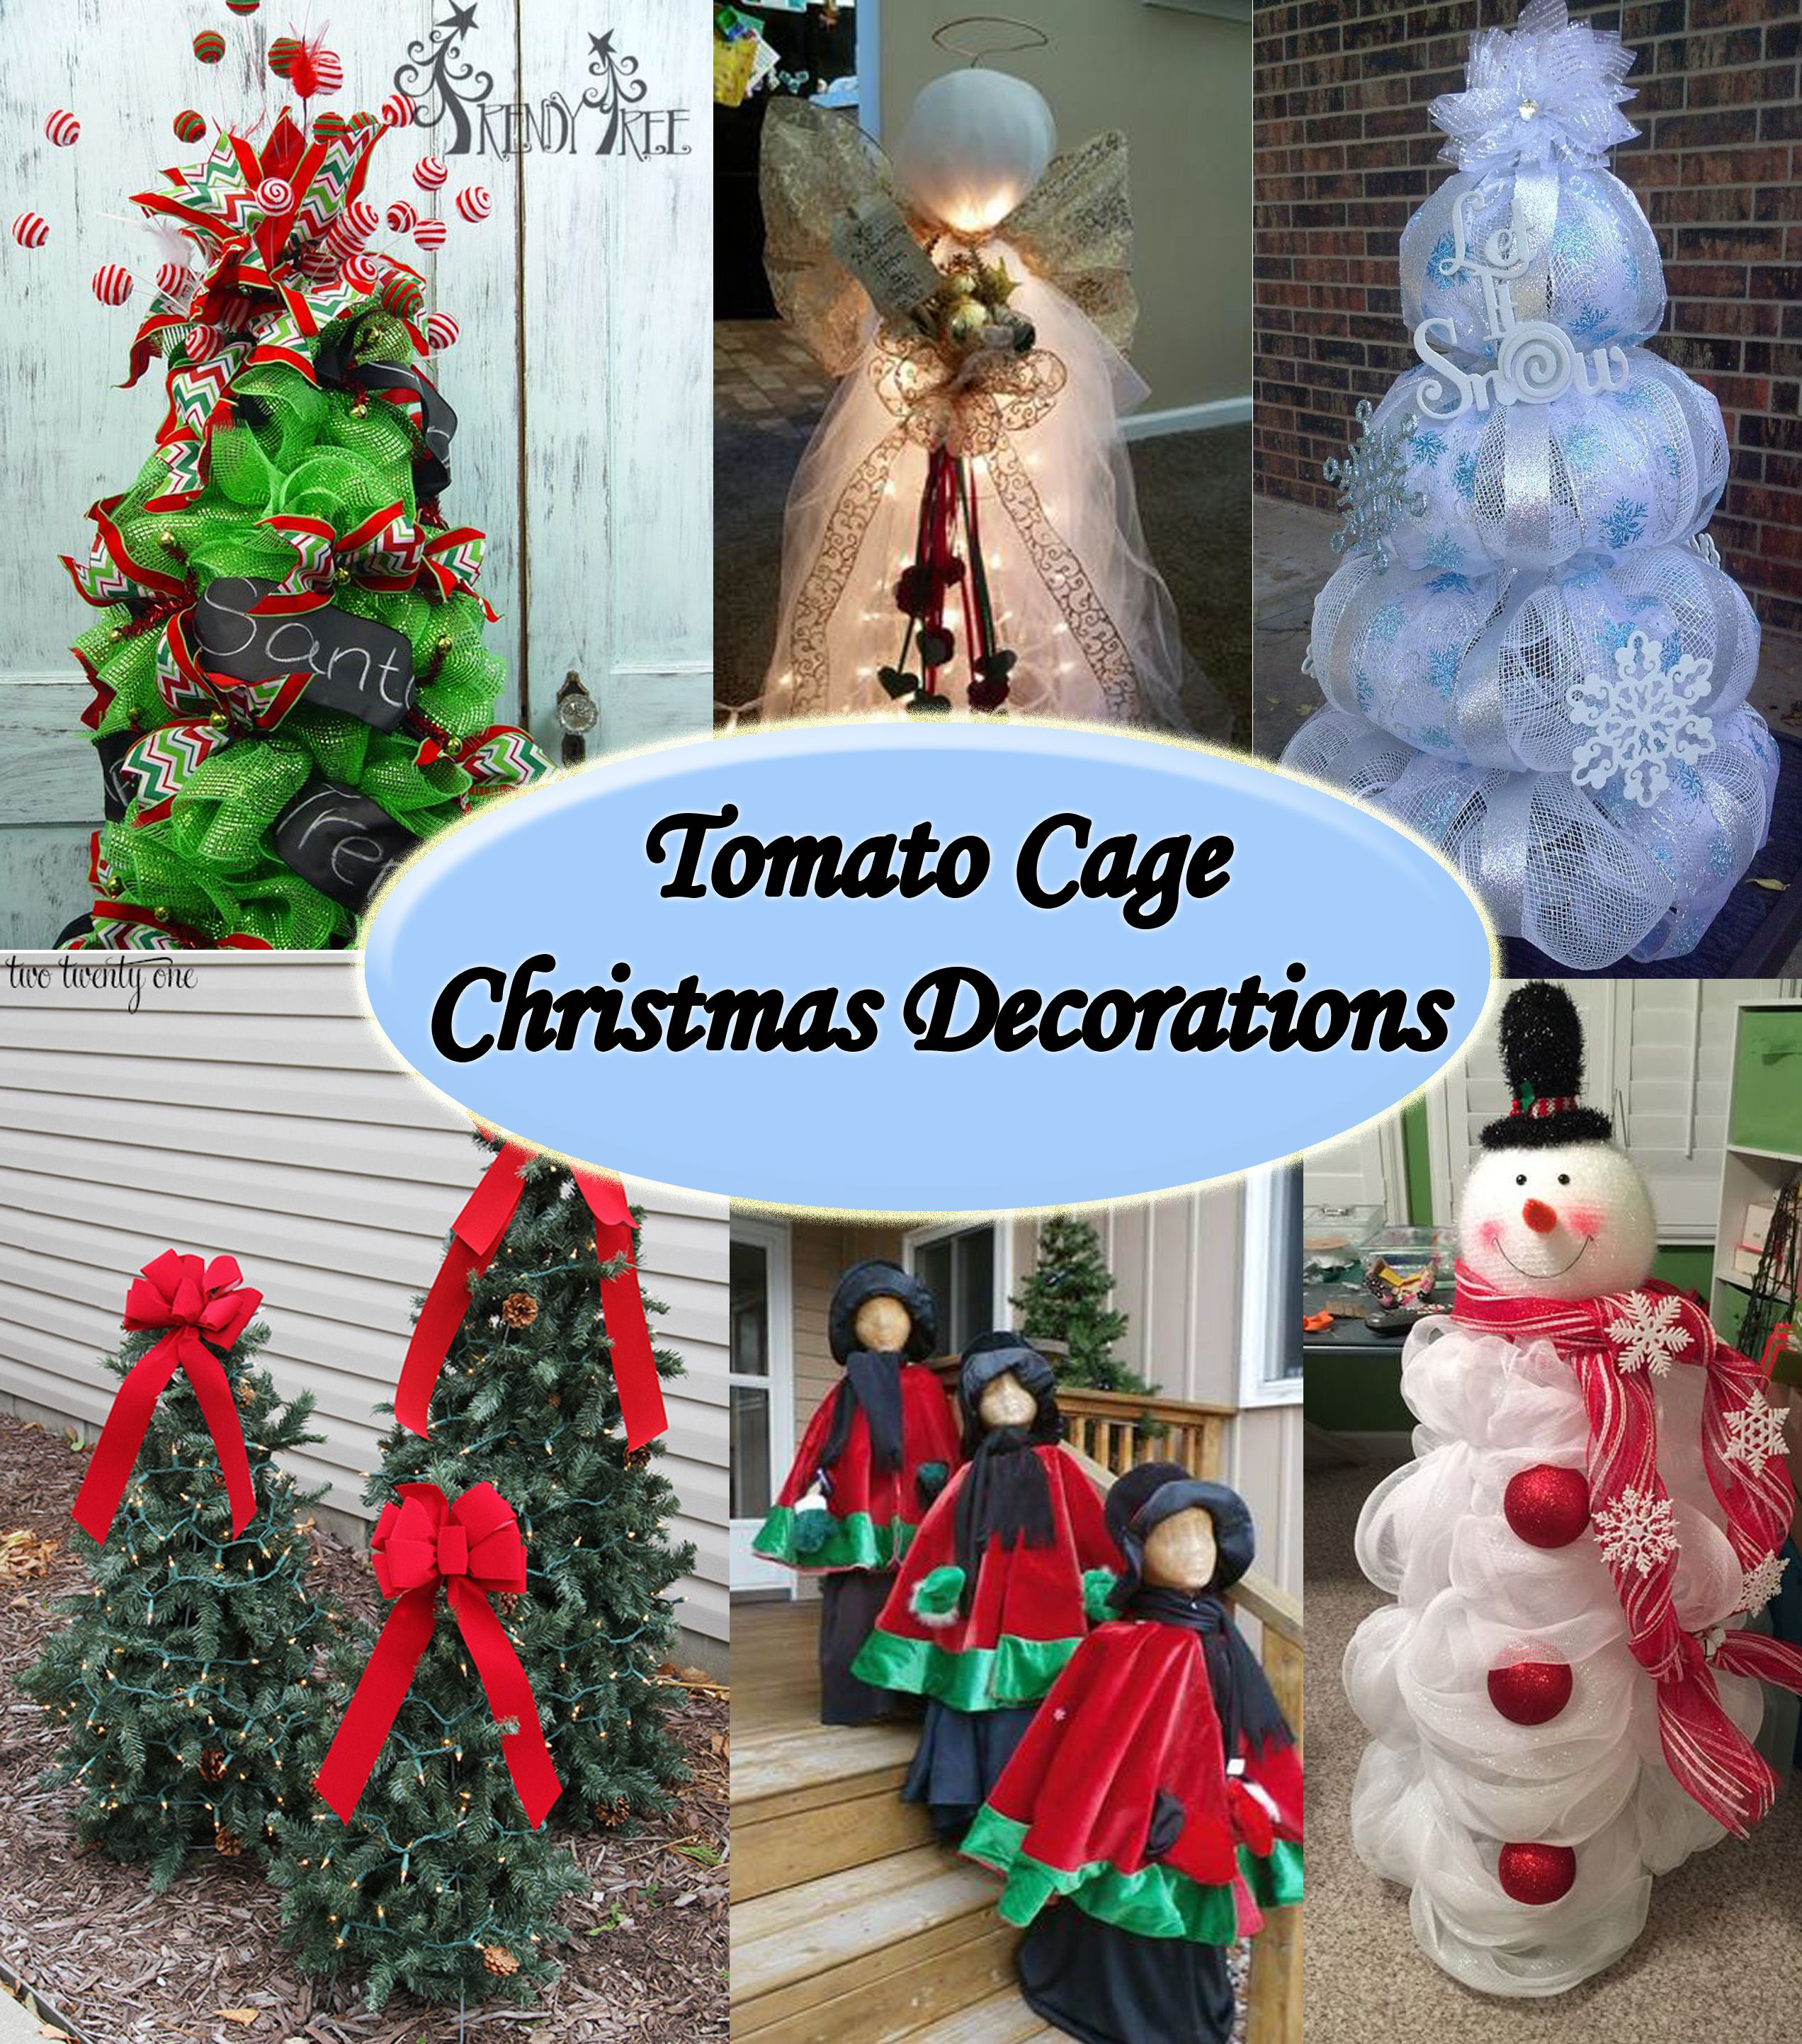 2f84cd35c925399a8c3f53529559c4acjpg - Tomato Cage Christmas Decorations